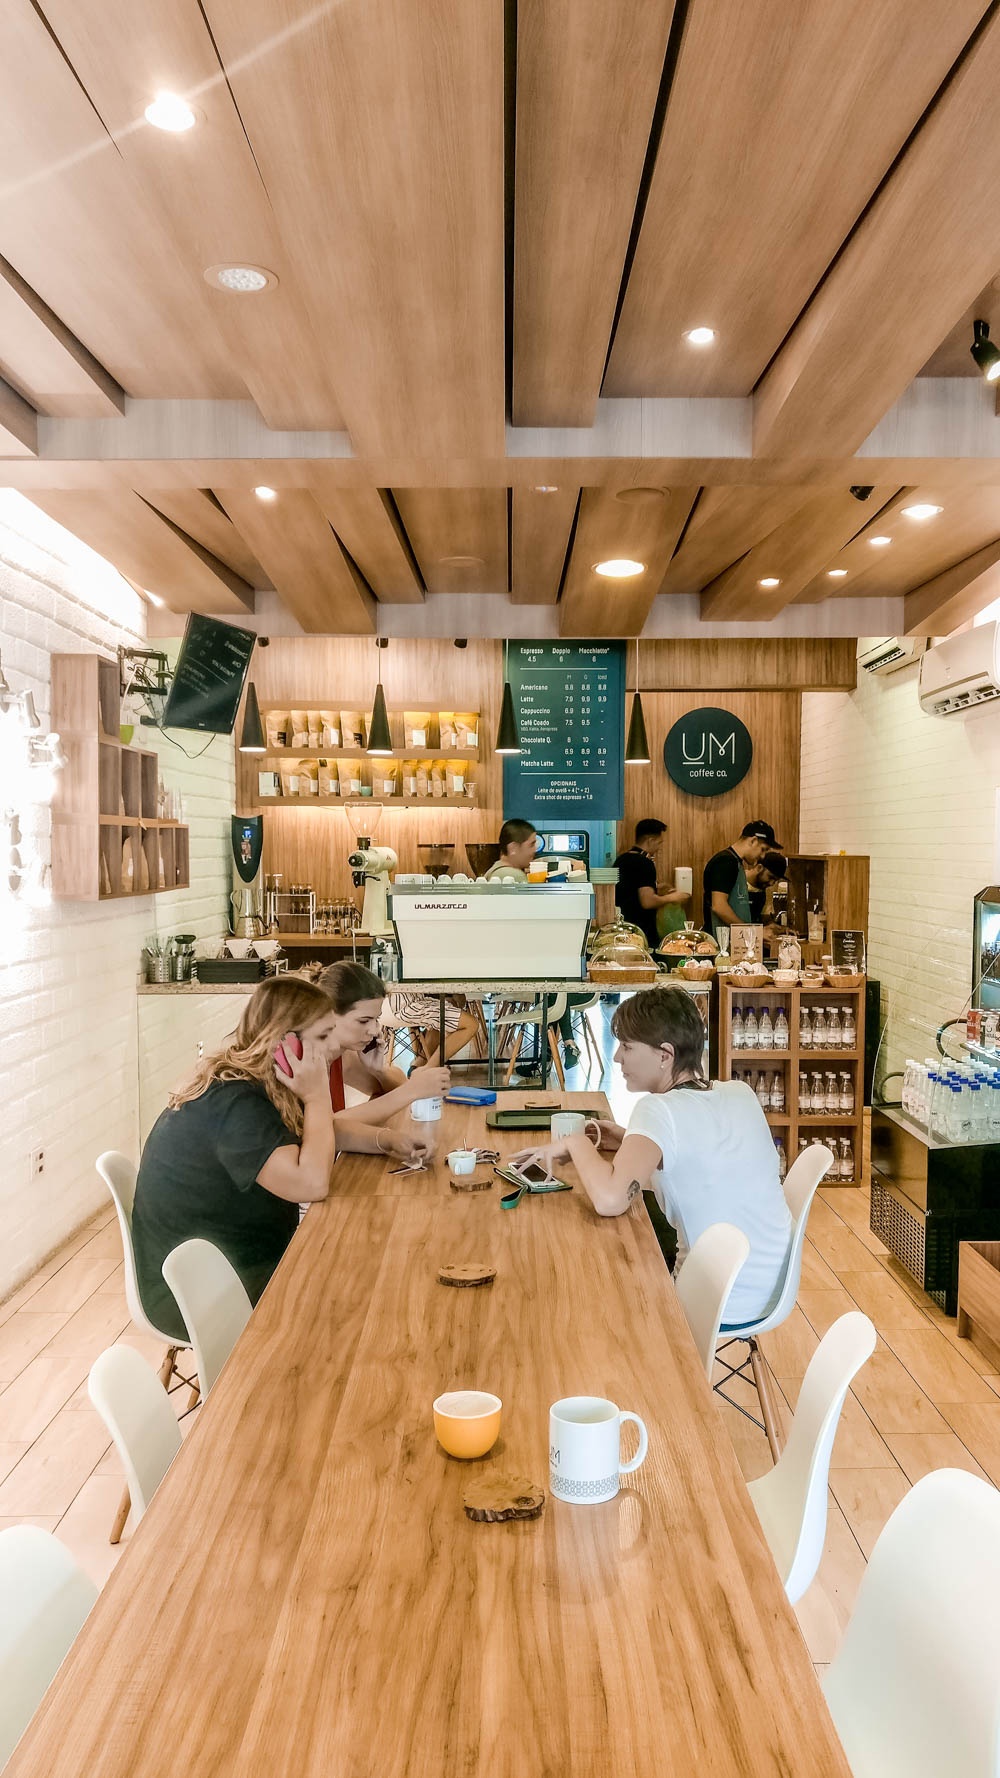 Um Coffee Co. - Itaim Bibi - Specialty coffee shop guide to São Paulo, Brazil | Aliz's Wonderland